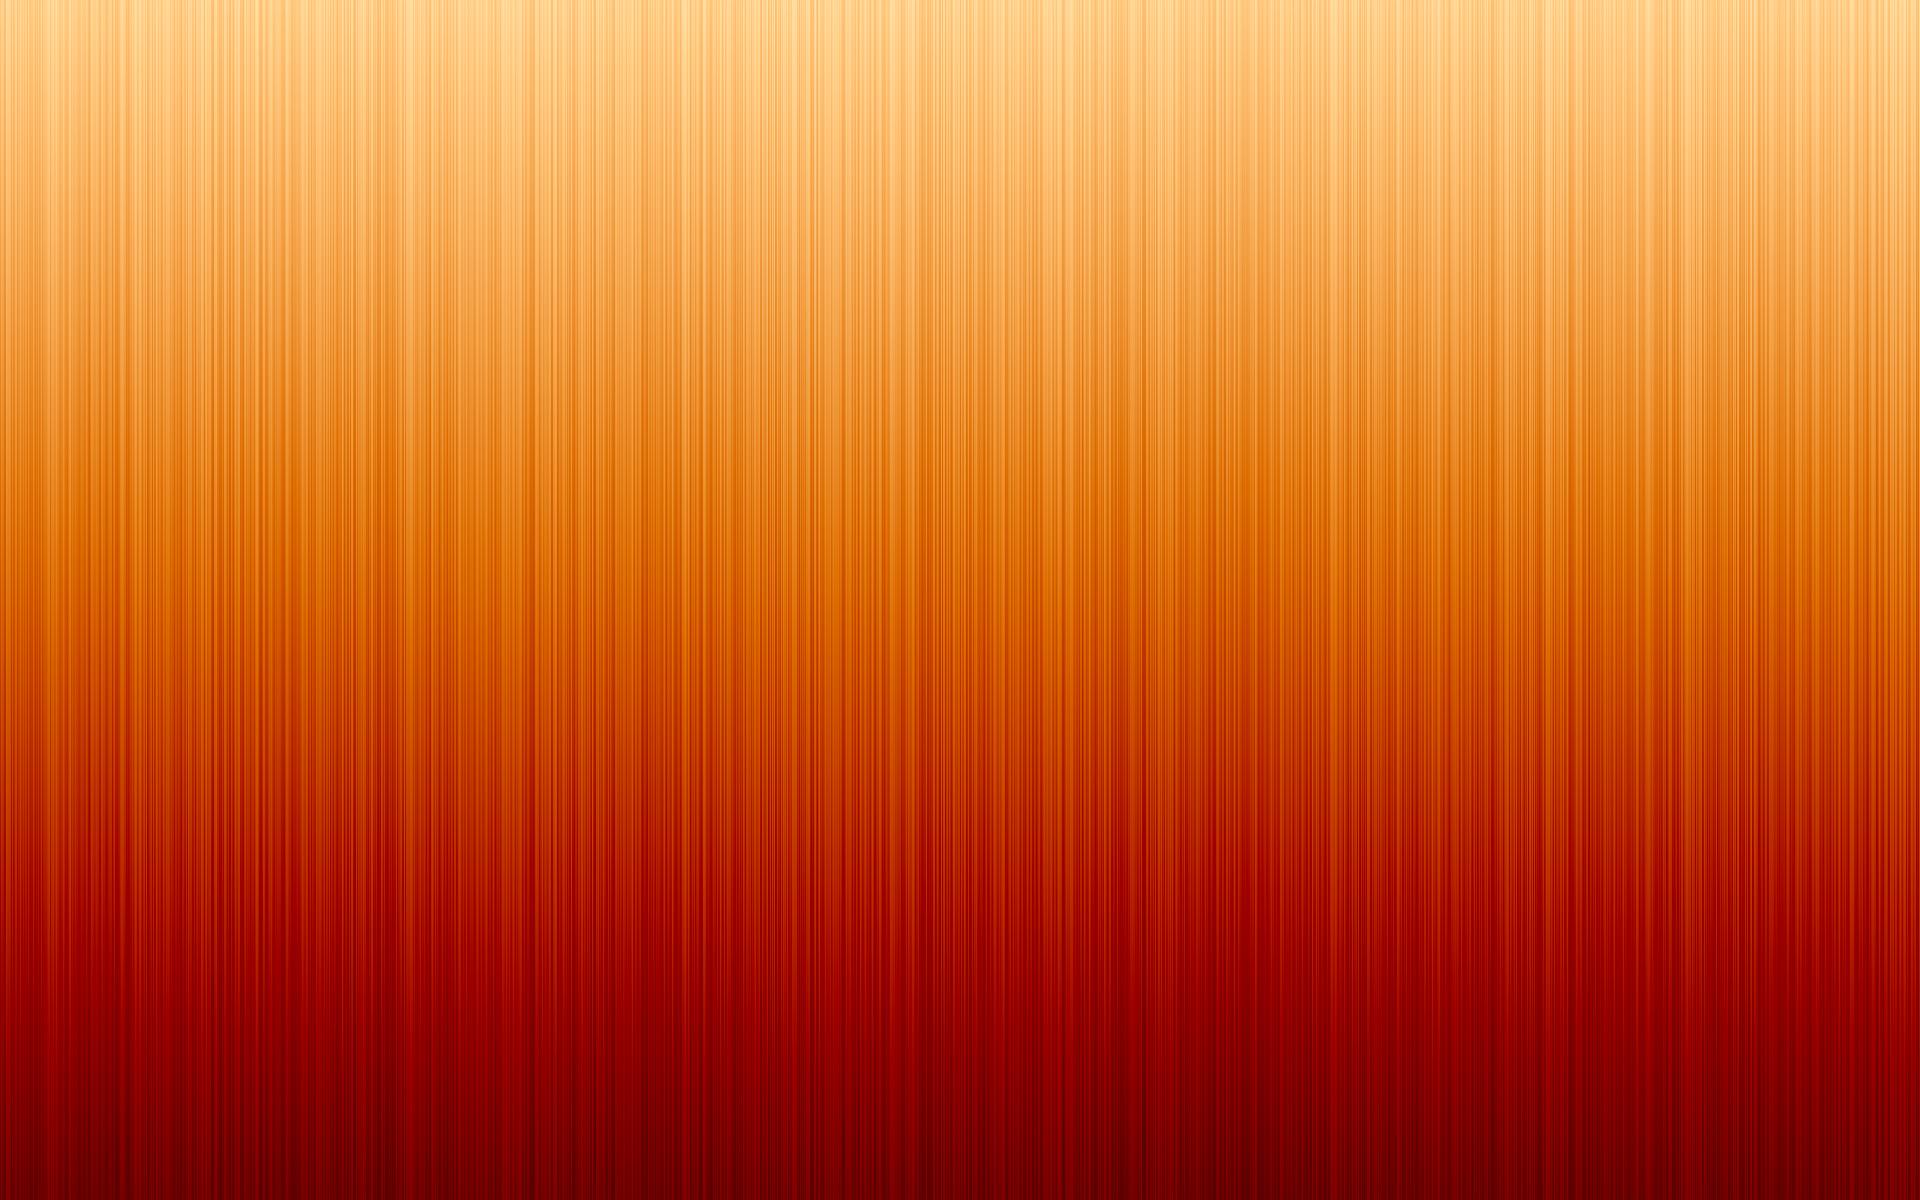 orange fresh new hd wallpaper best quality desktop background 1920x1200